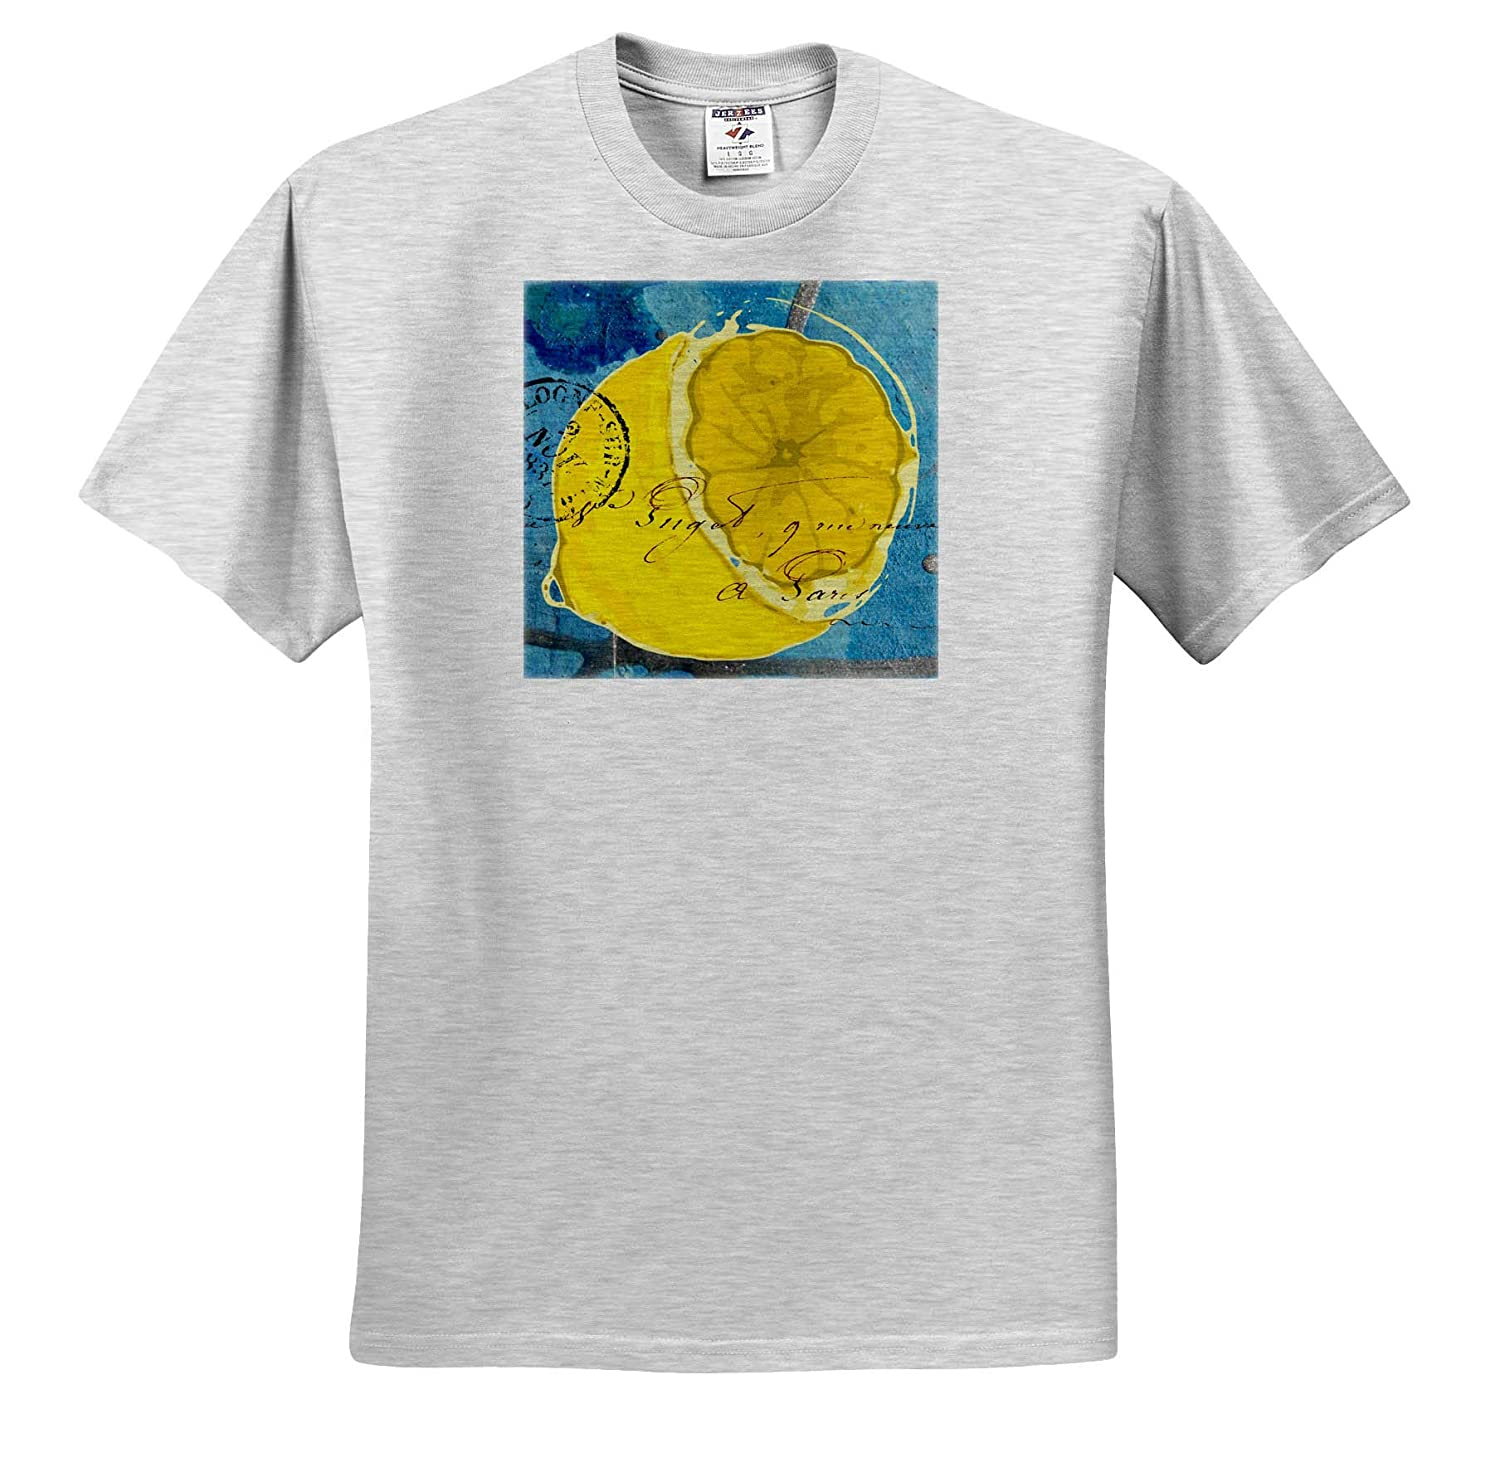 3dRose Cassie Peters Mixed Media T-Shirts Lemon Mixed Media Collage